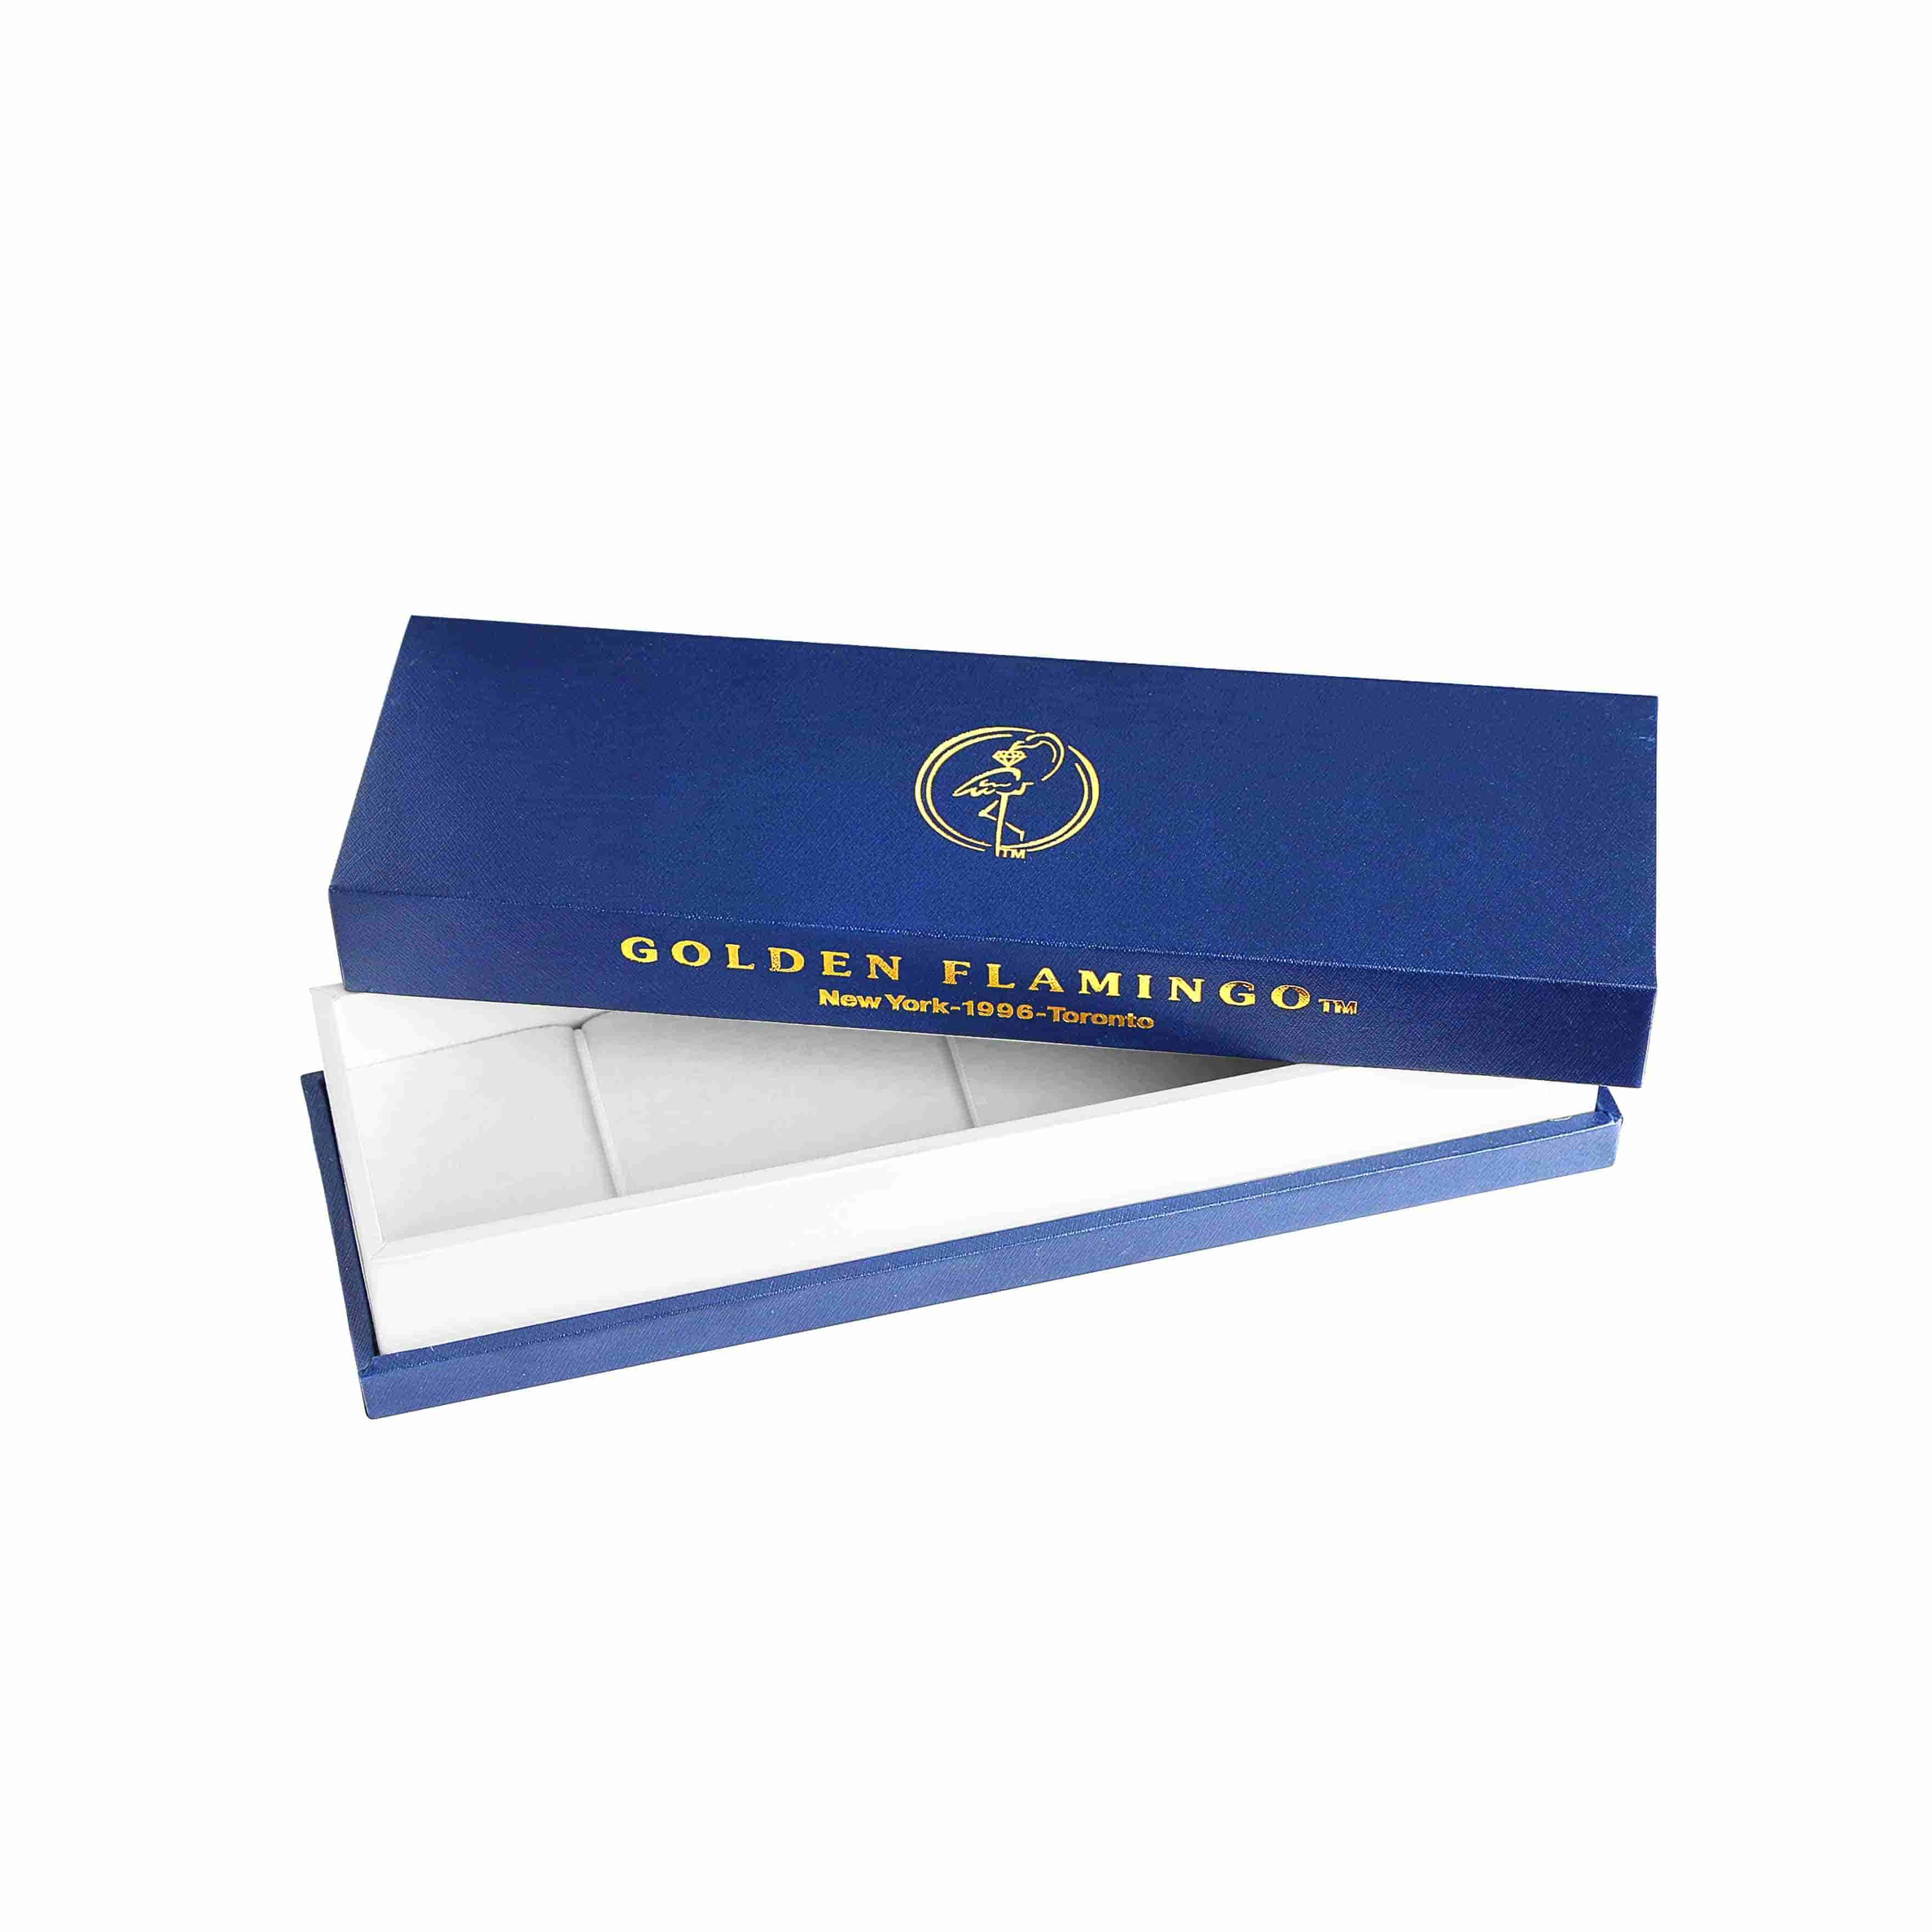 Boutique-quality gift box for gold bracelet by the Golden Flamingo brand